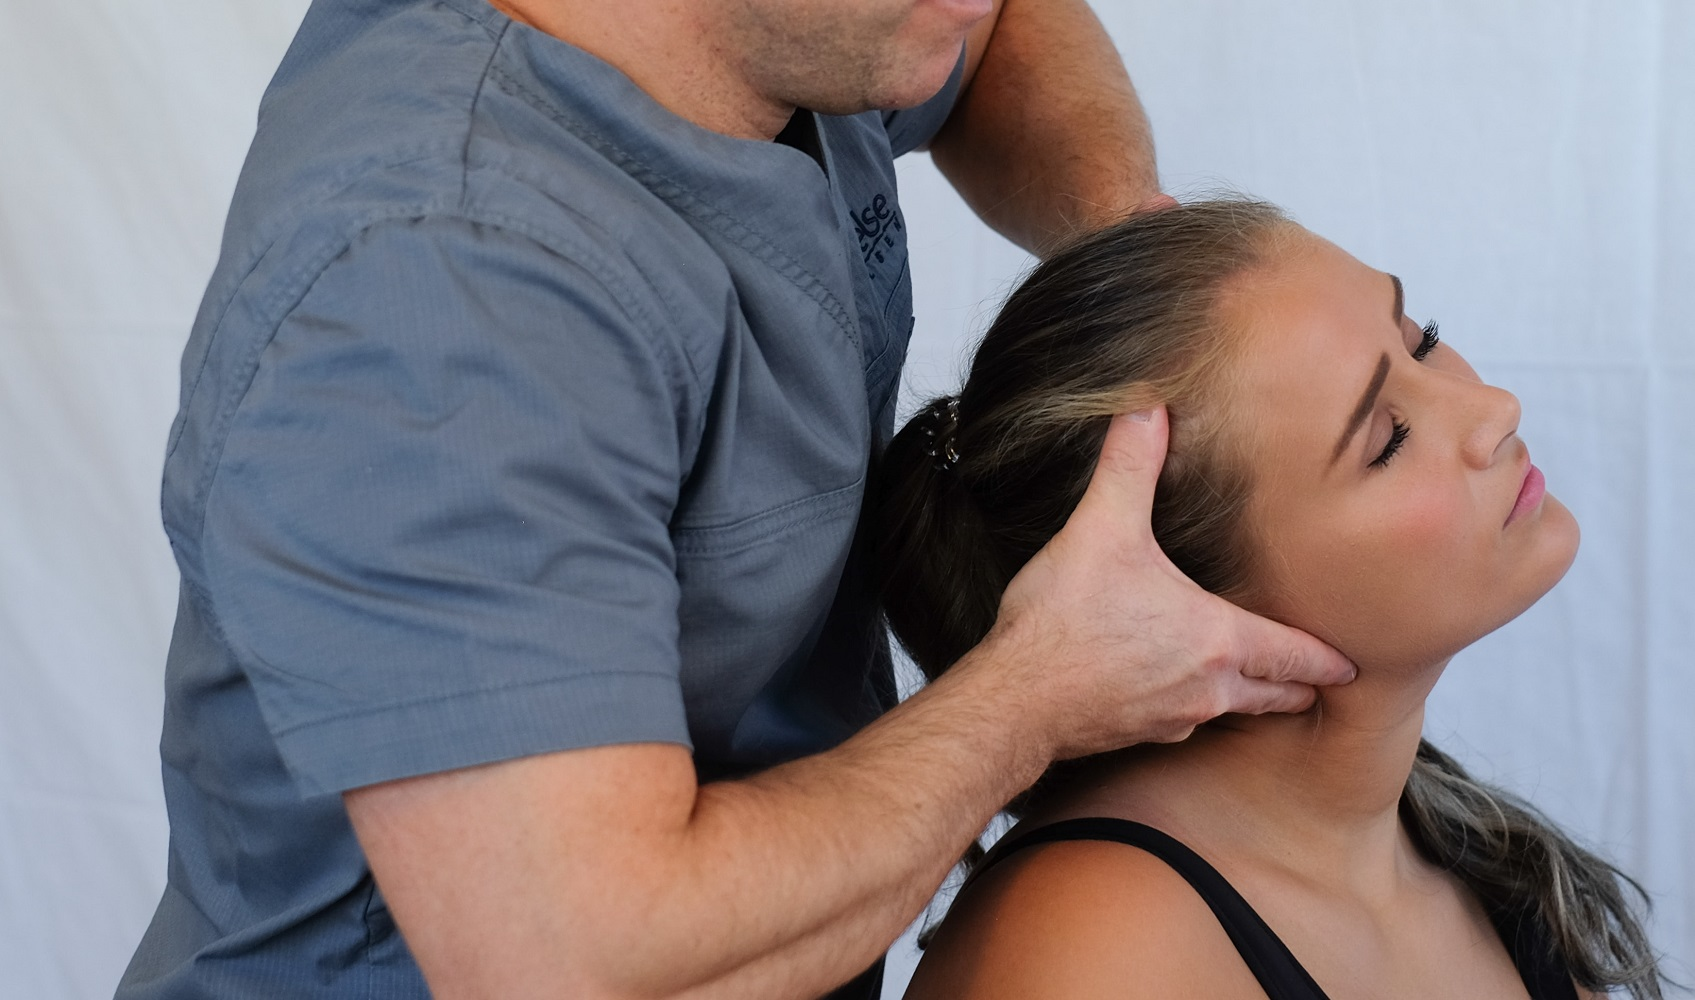 What is Craniosacral Therapy Used For & Its Health Benefits?